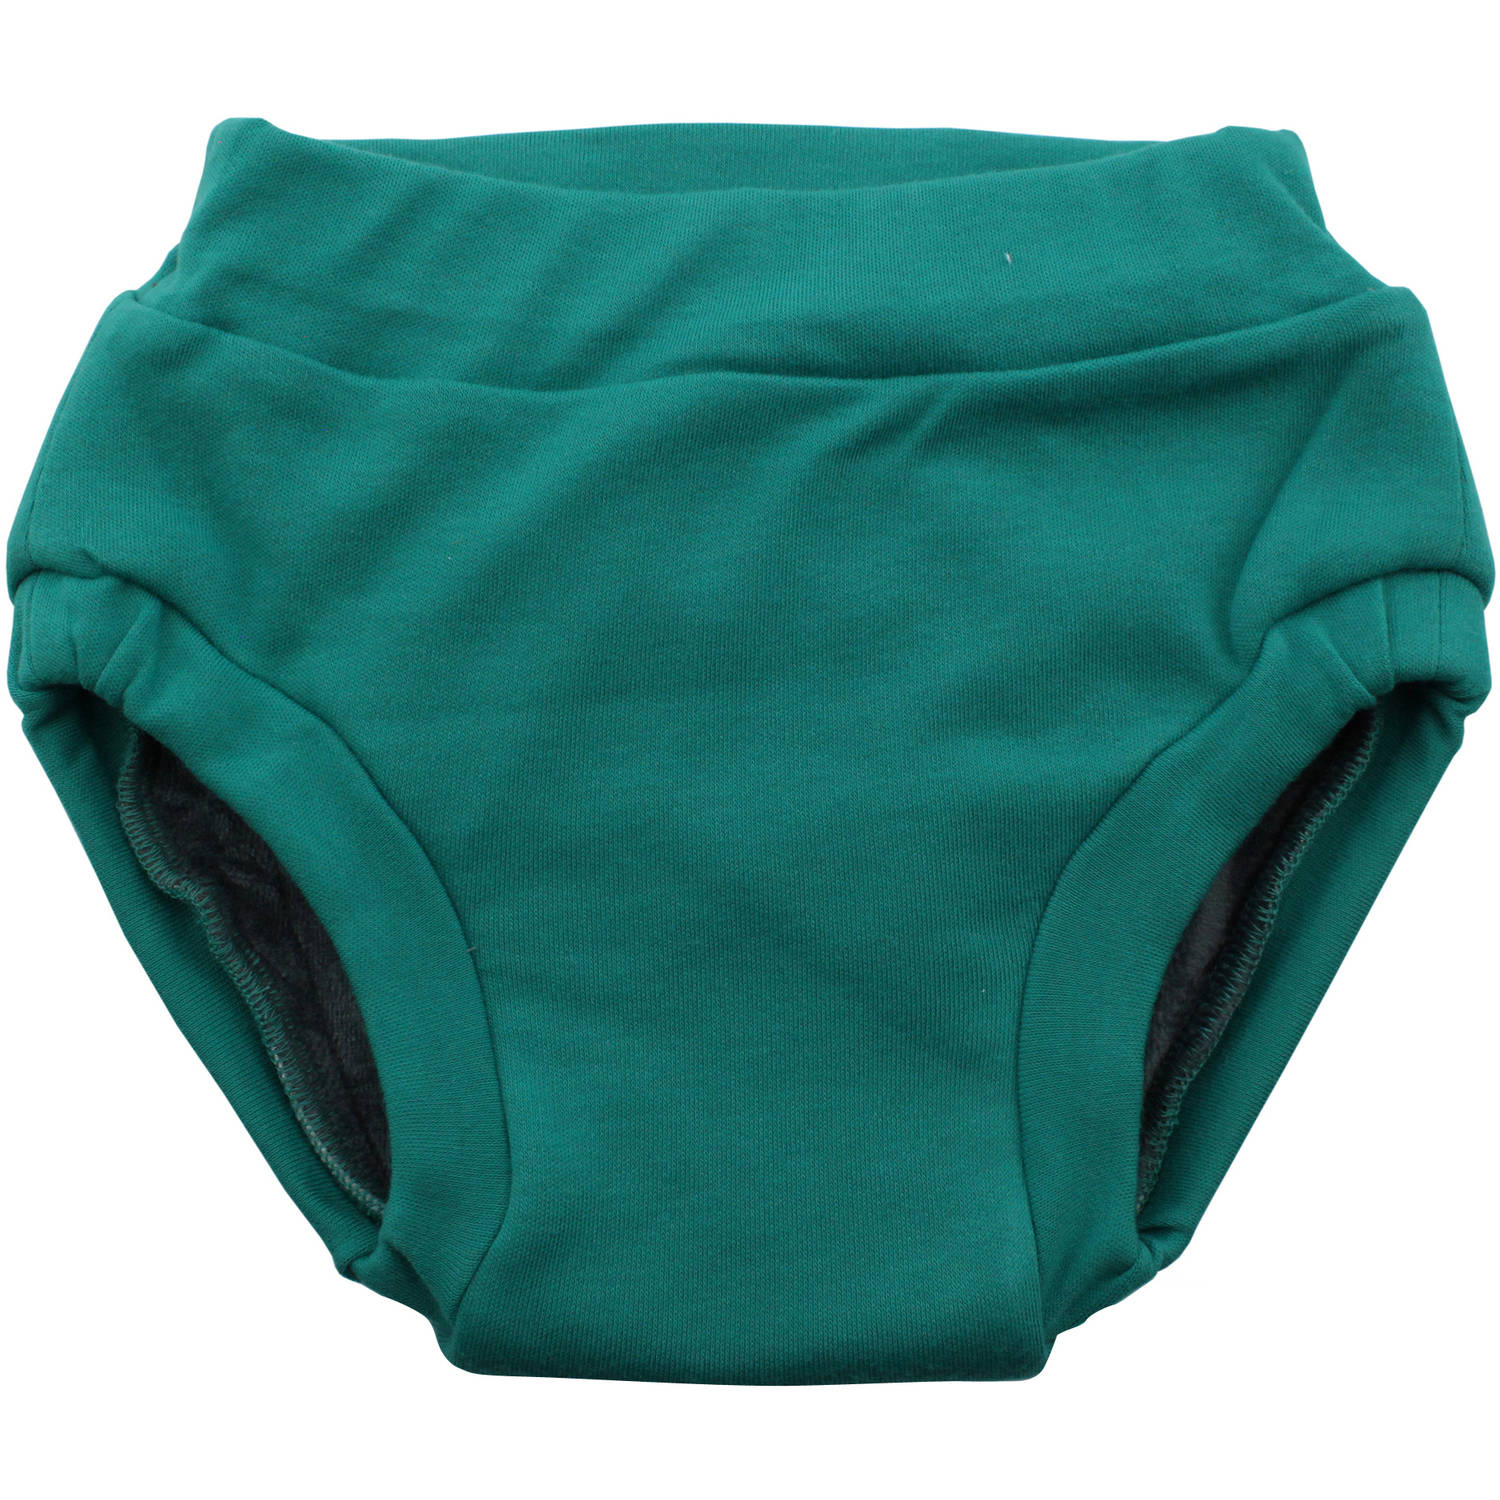 Kanga Care Ecoposh OBV Training Pants, Large 3T+